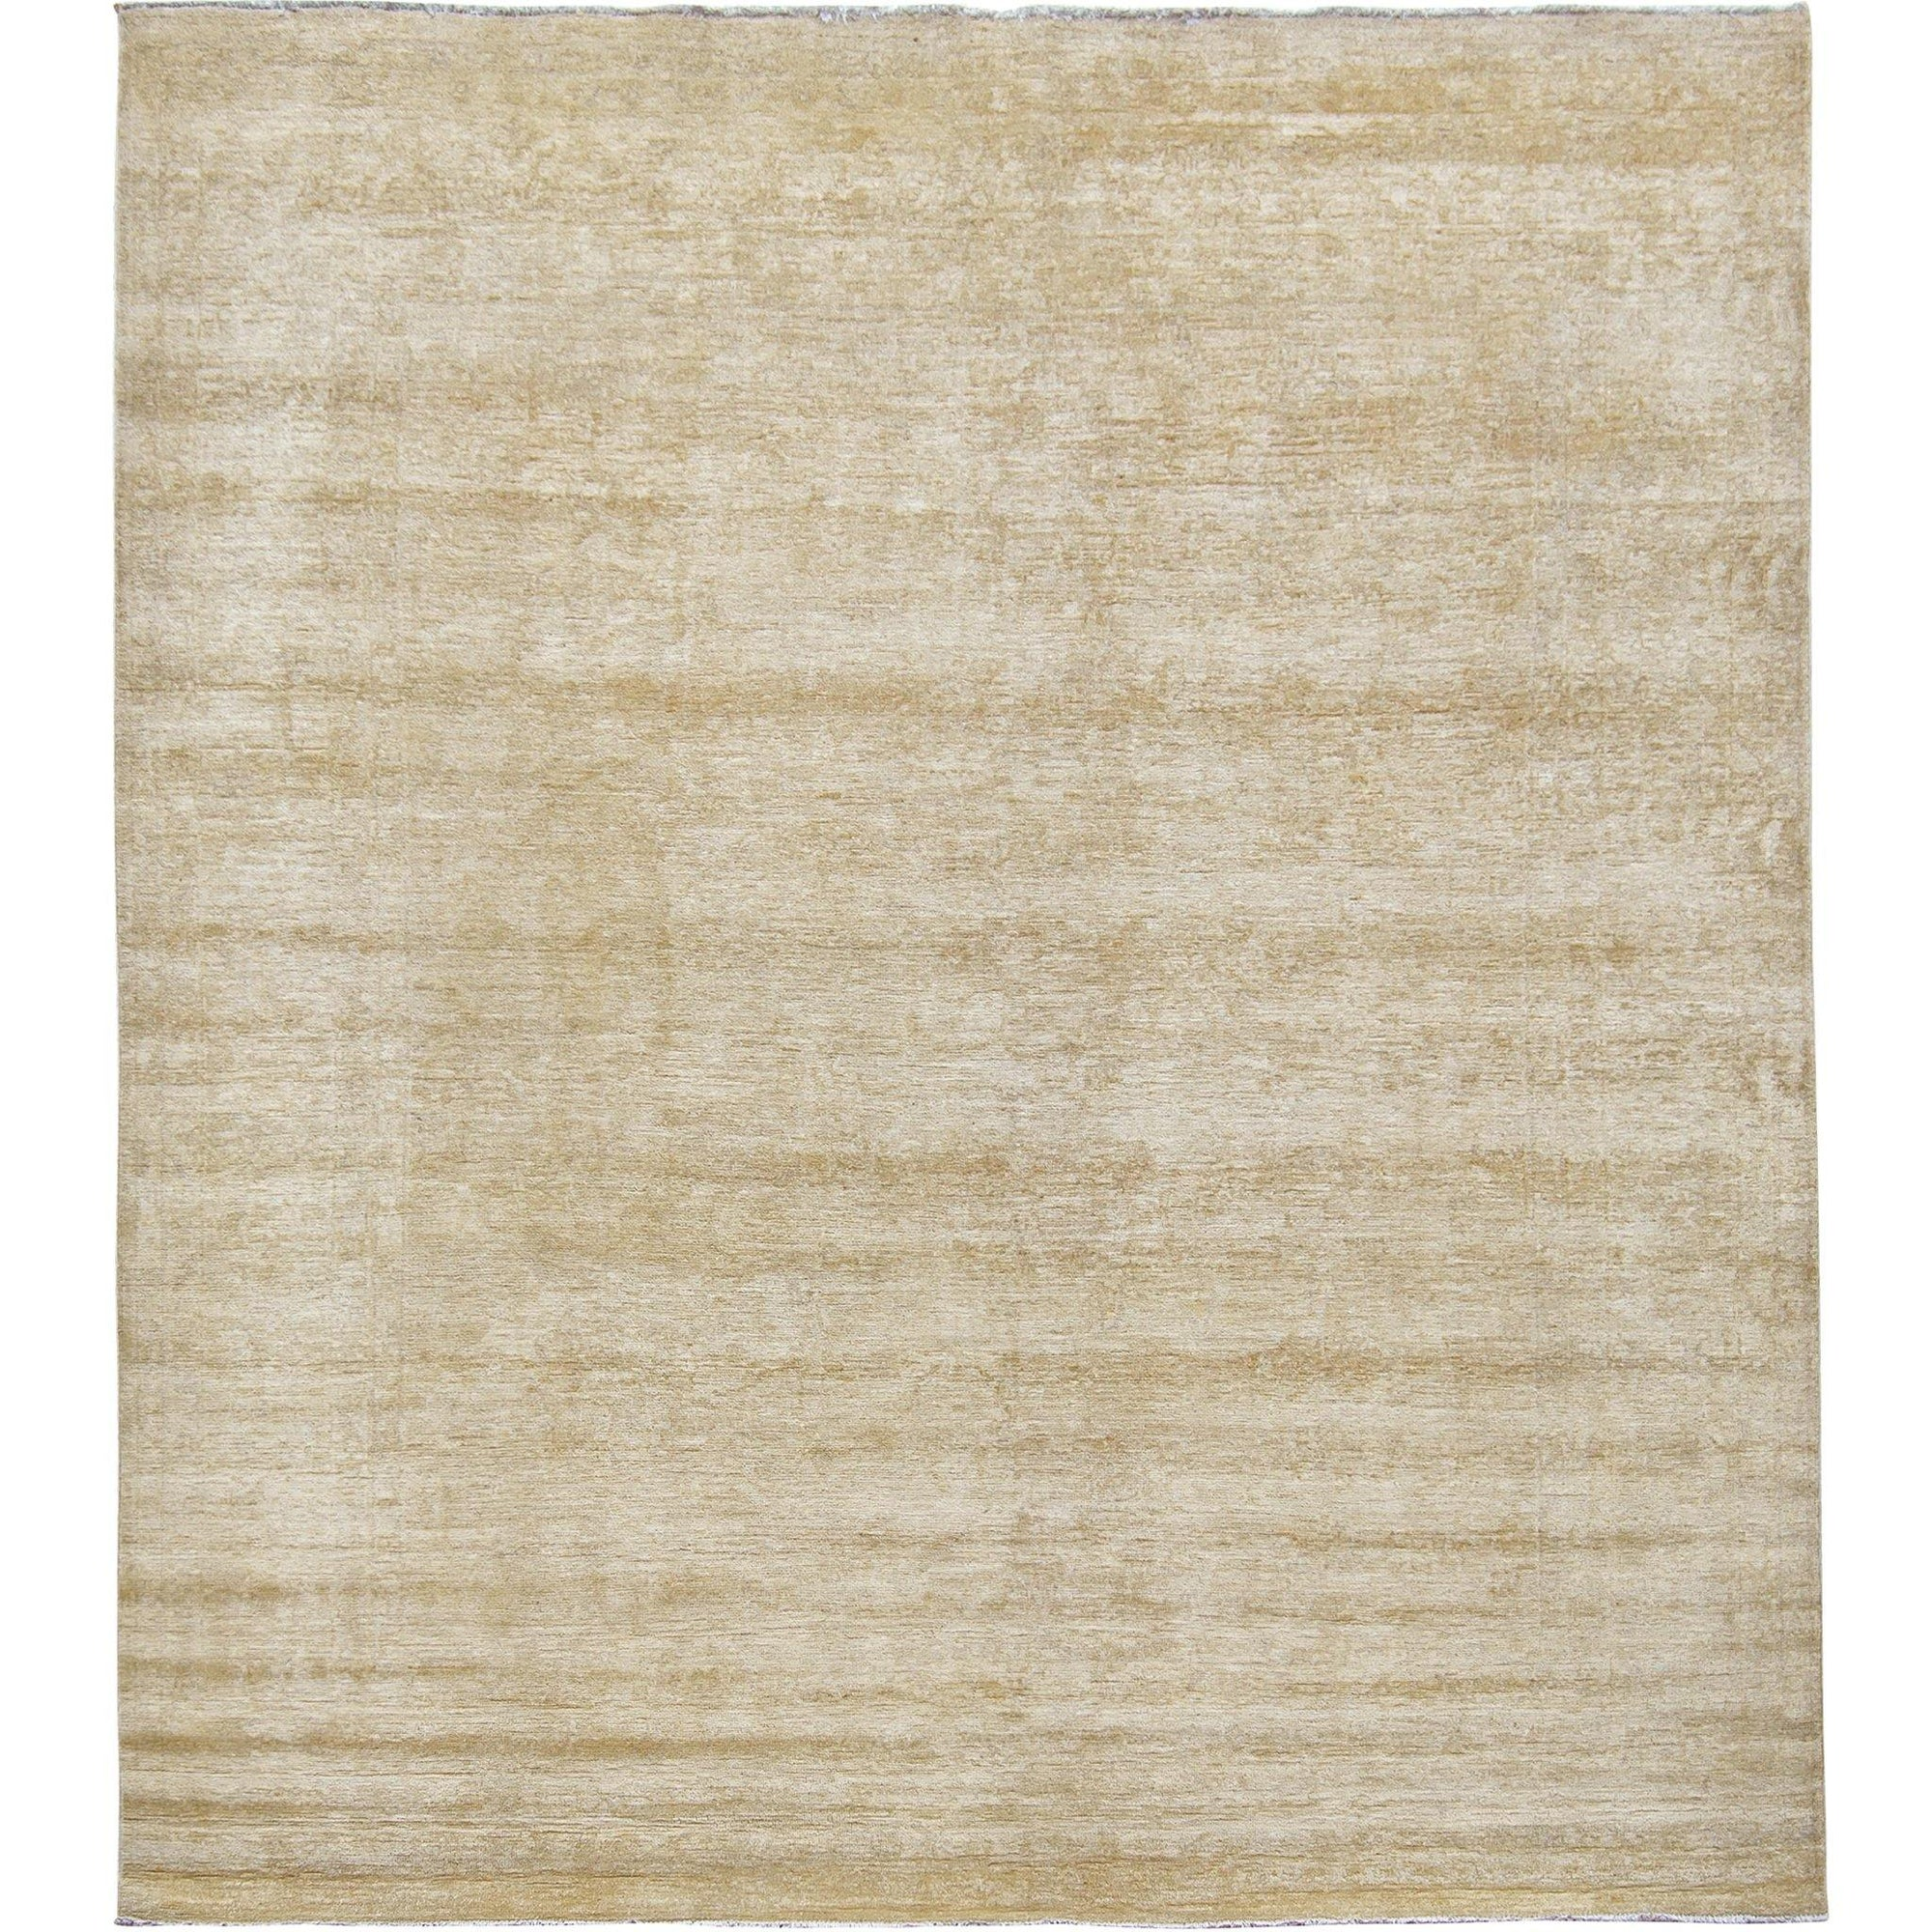 Contemporary Hand-knotted Wool Rug 247cm x 300cm Persian-Rug | House-of-Haghi | NewMarket | Auckland | NZ | Handmade Persian Rugs | Hand Knotted Persian Rugs